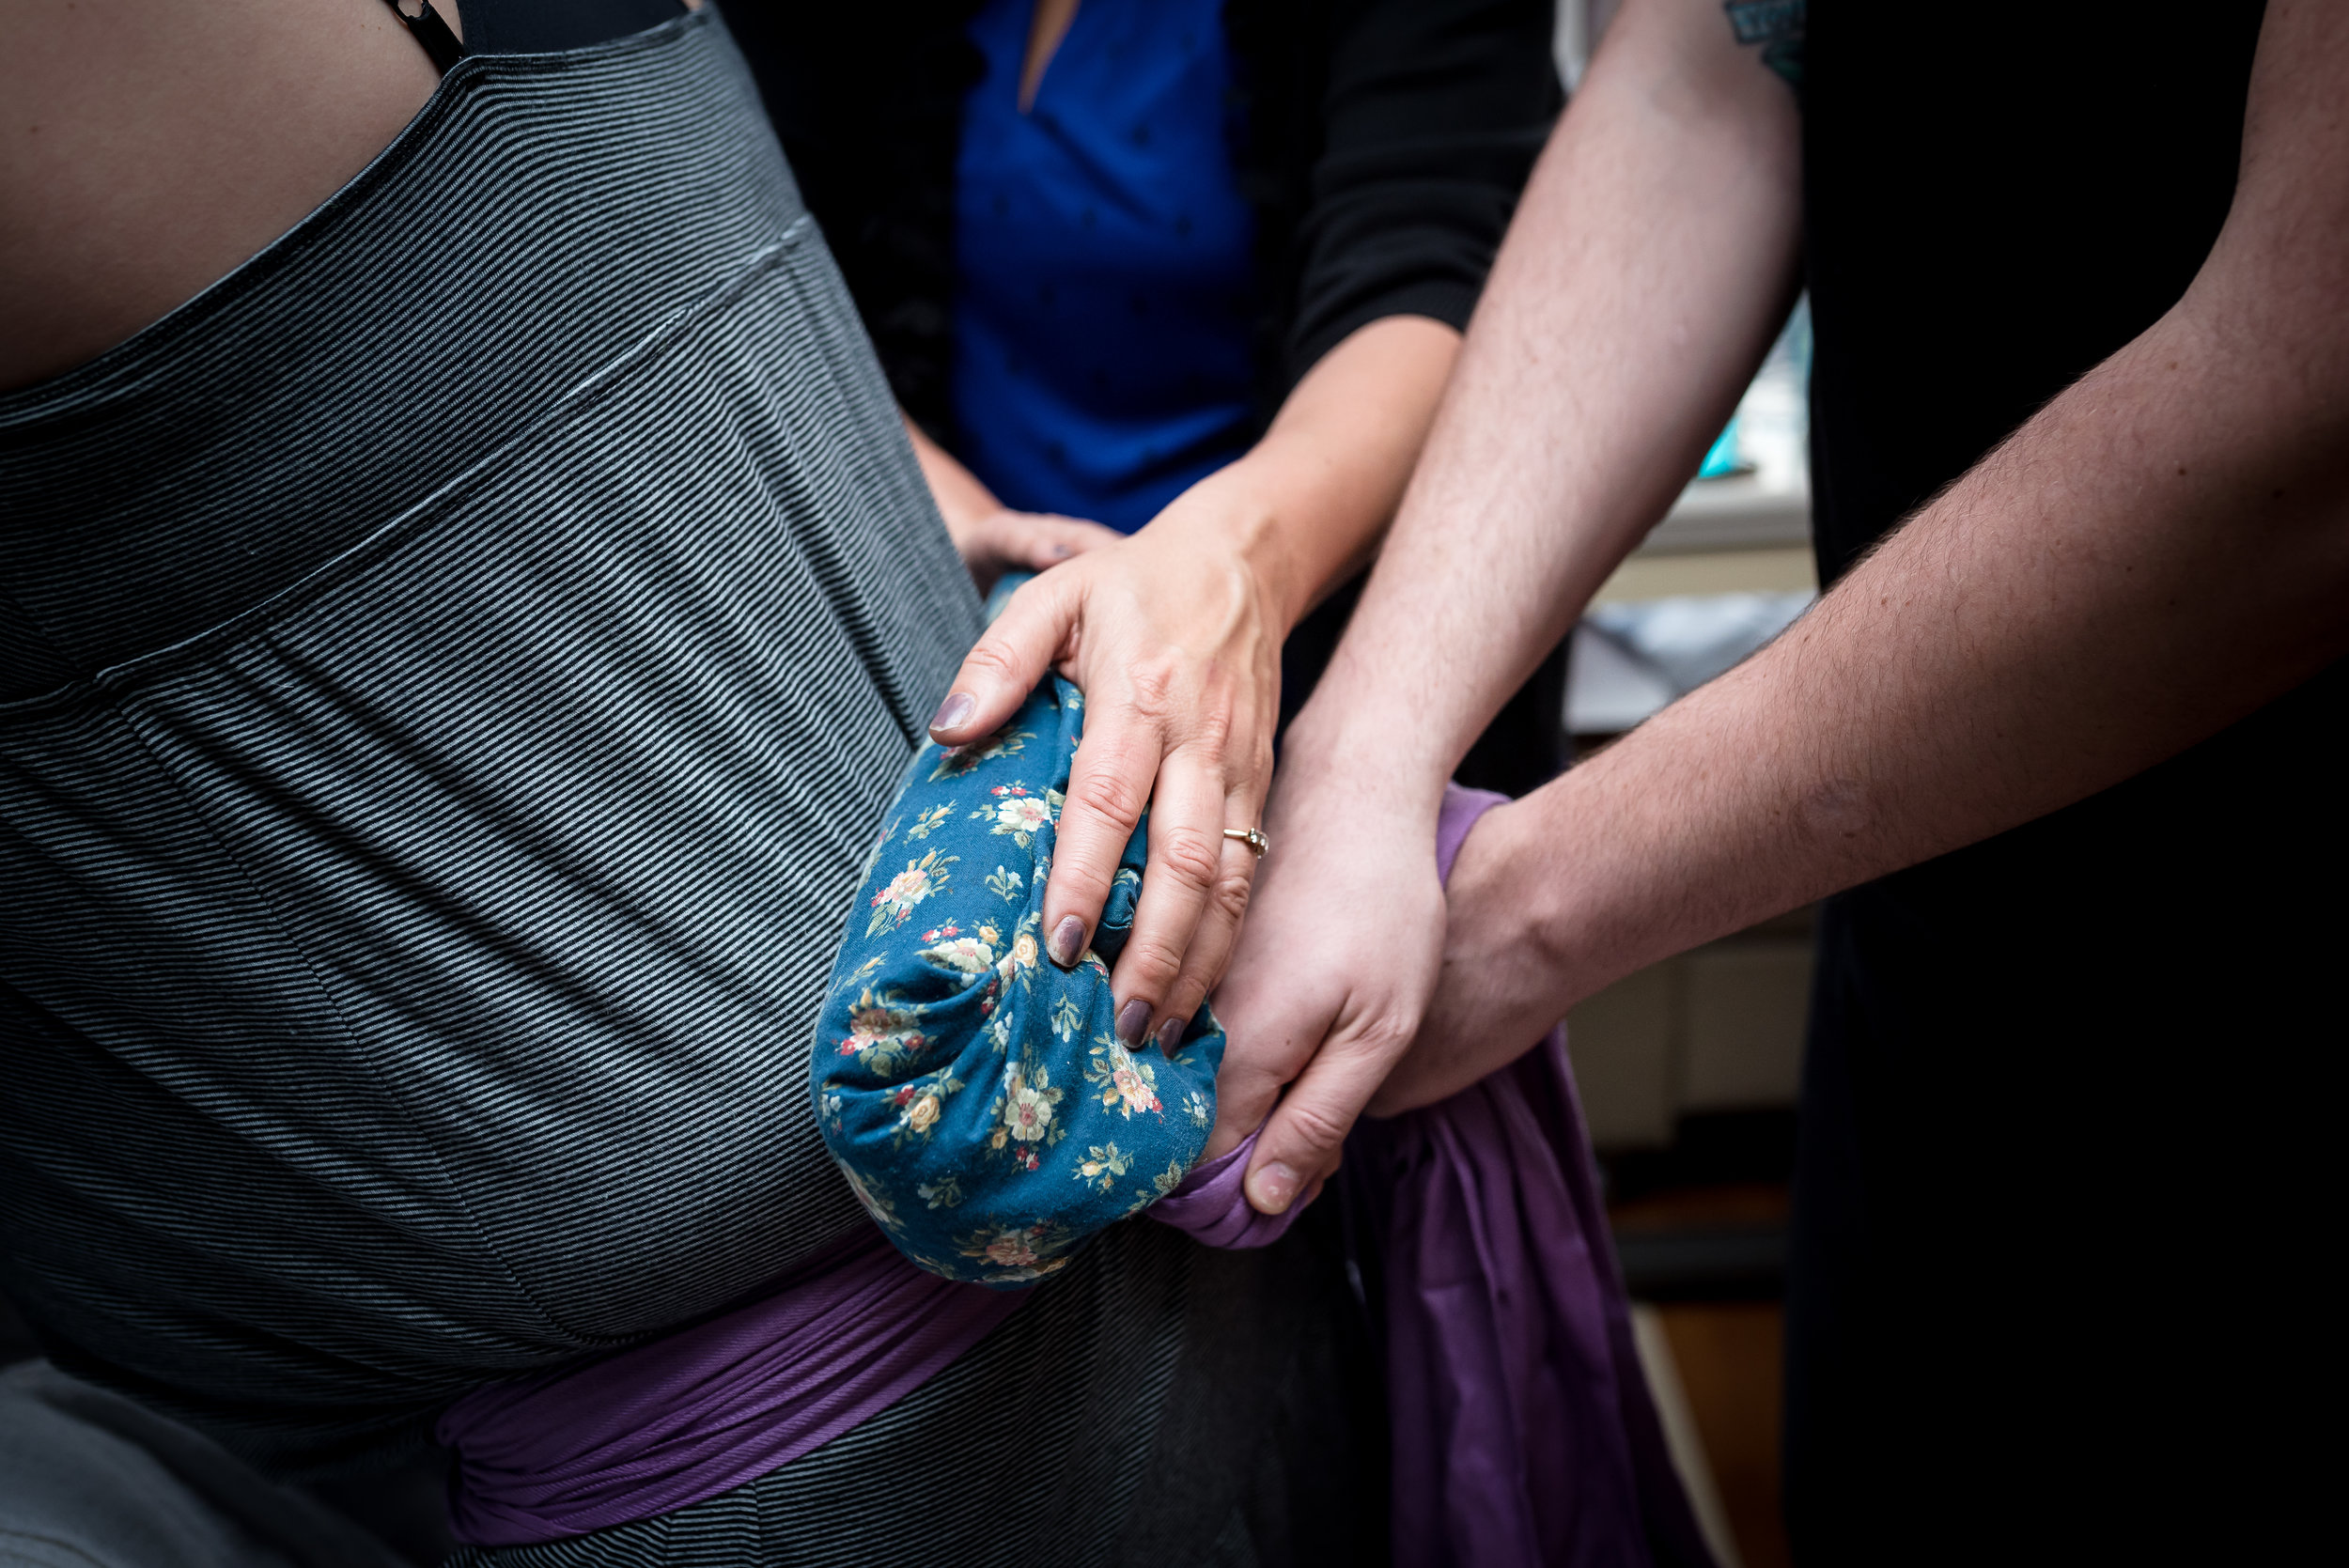 Using Rebozo and heat pack in birth with doula